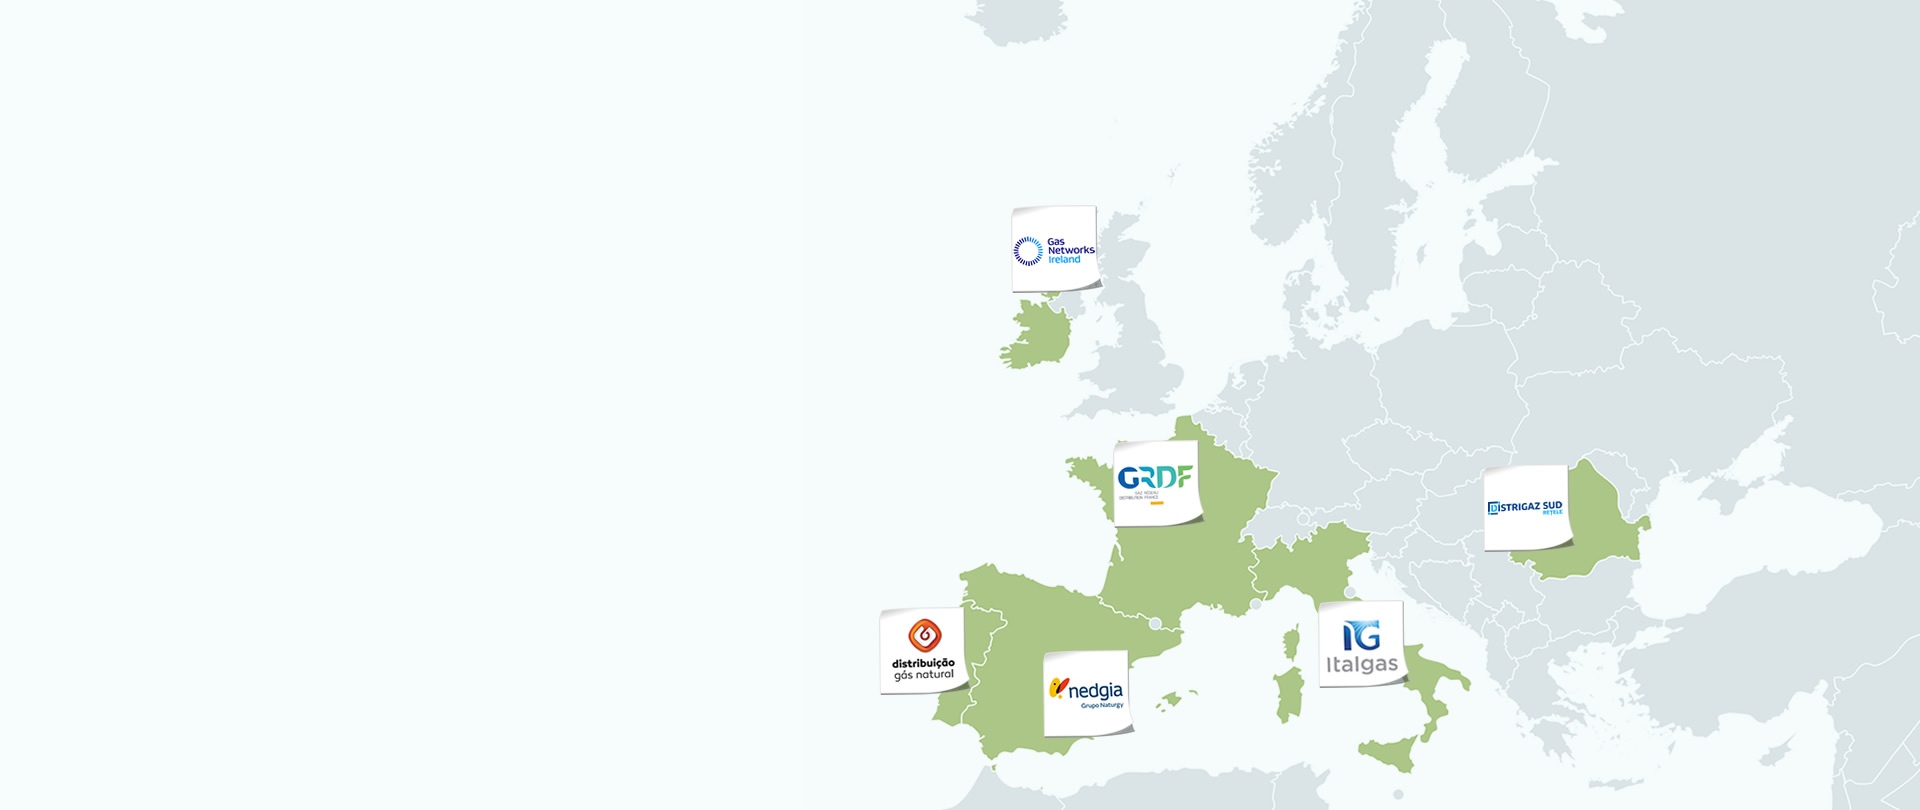 Six major European Gas distribution utilities gathered in the GD4S association